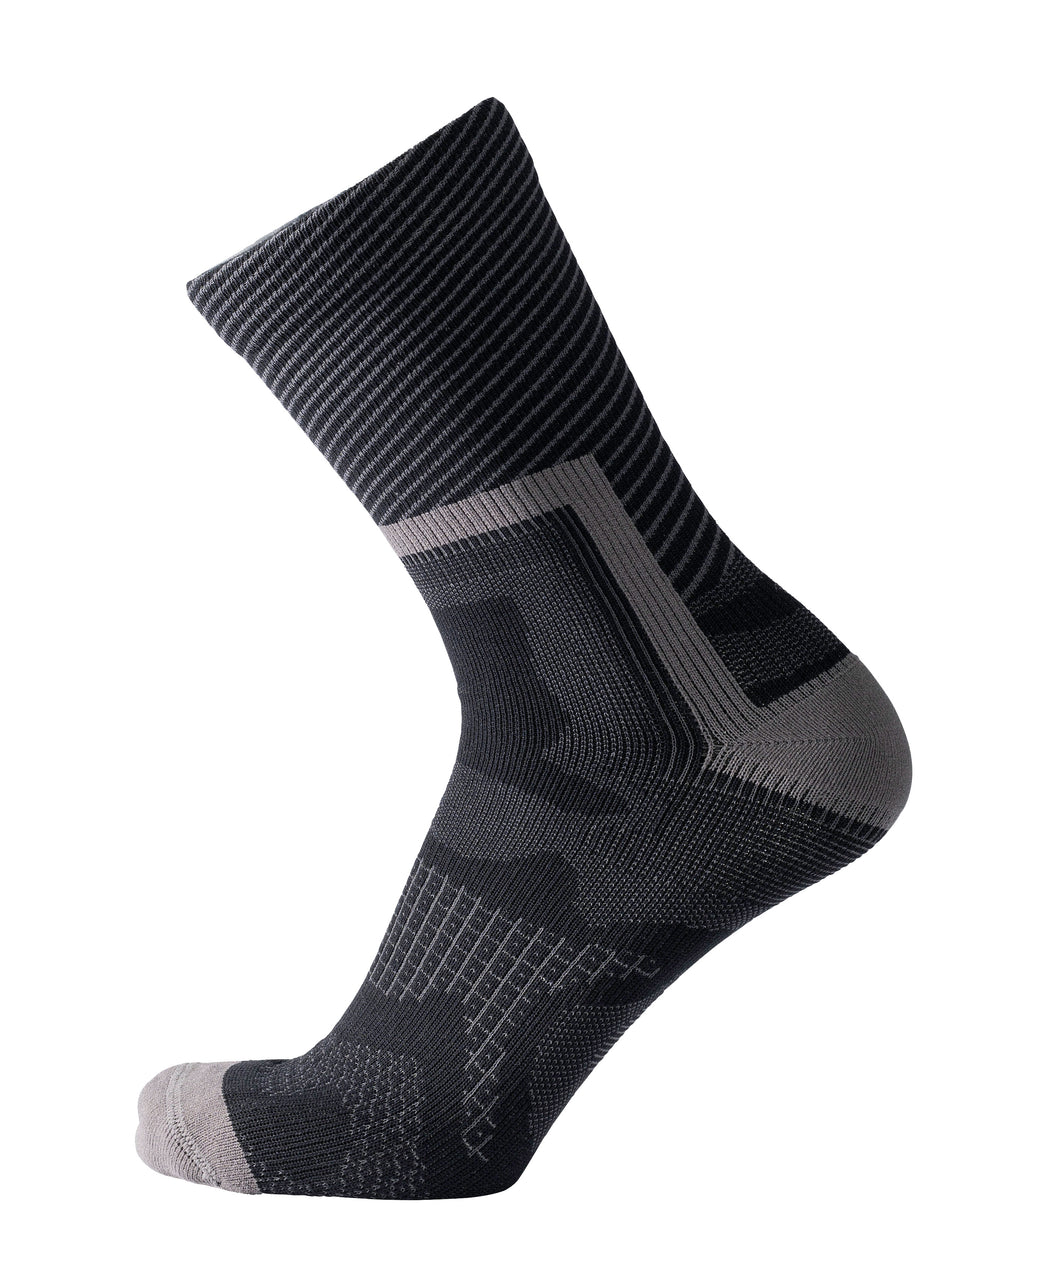 2020/21 Showers Pass Crosspoint Ultra-Light Waterproof Crew Socks Black/Grey | Cento Cycling